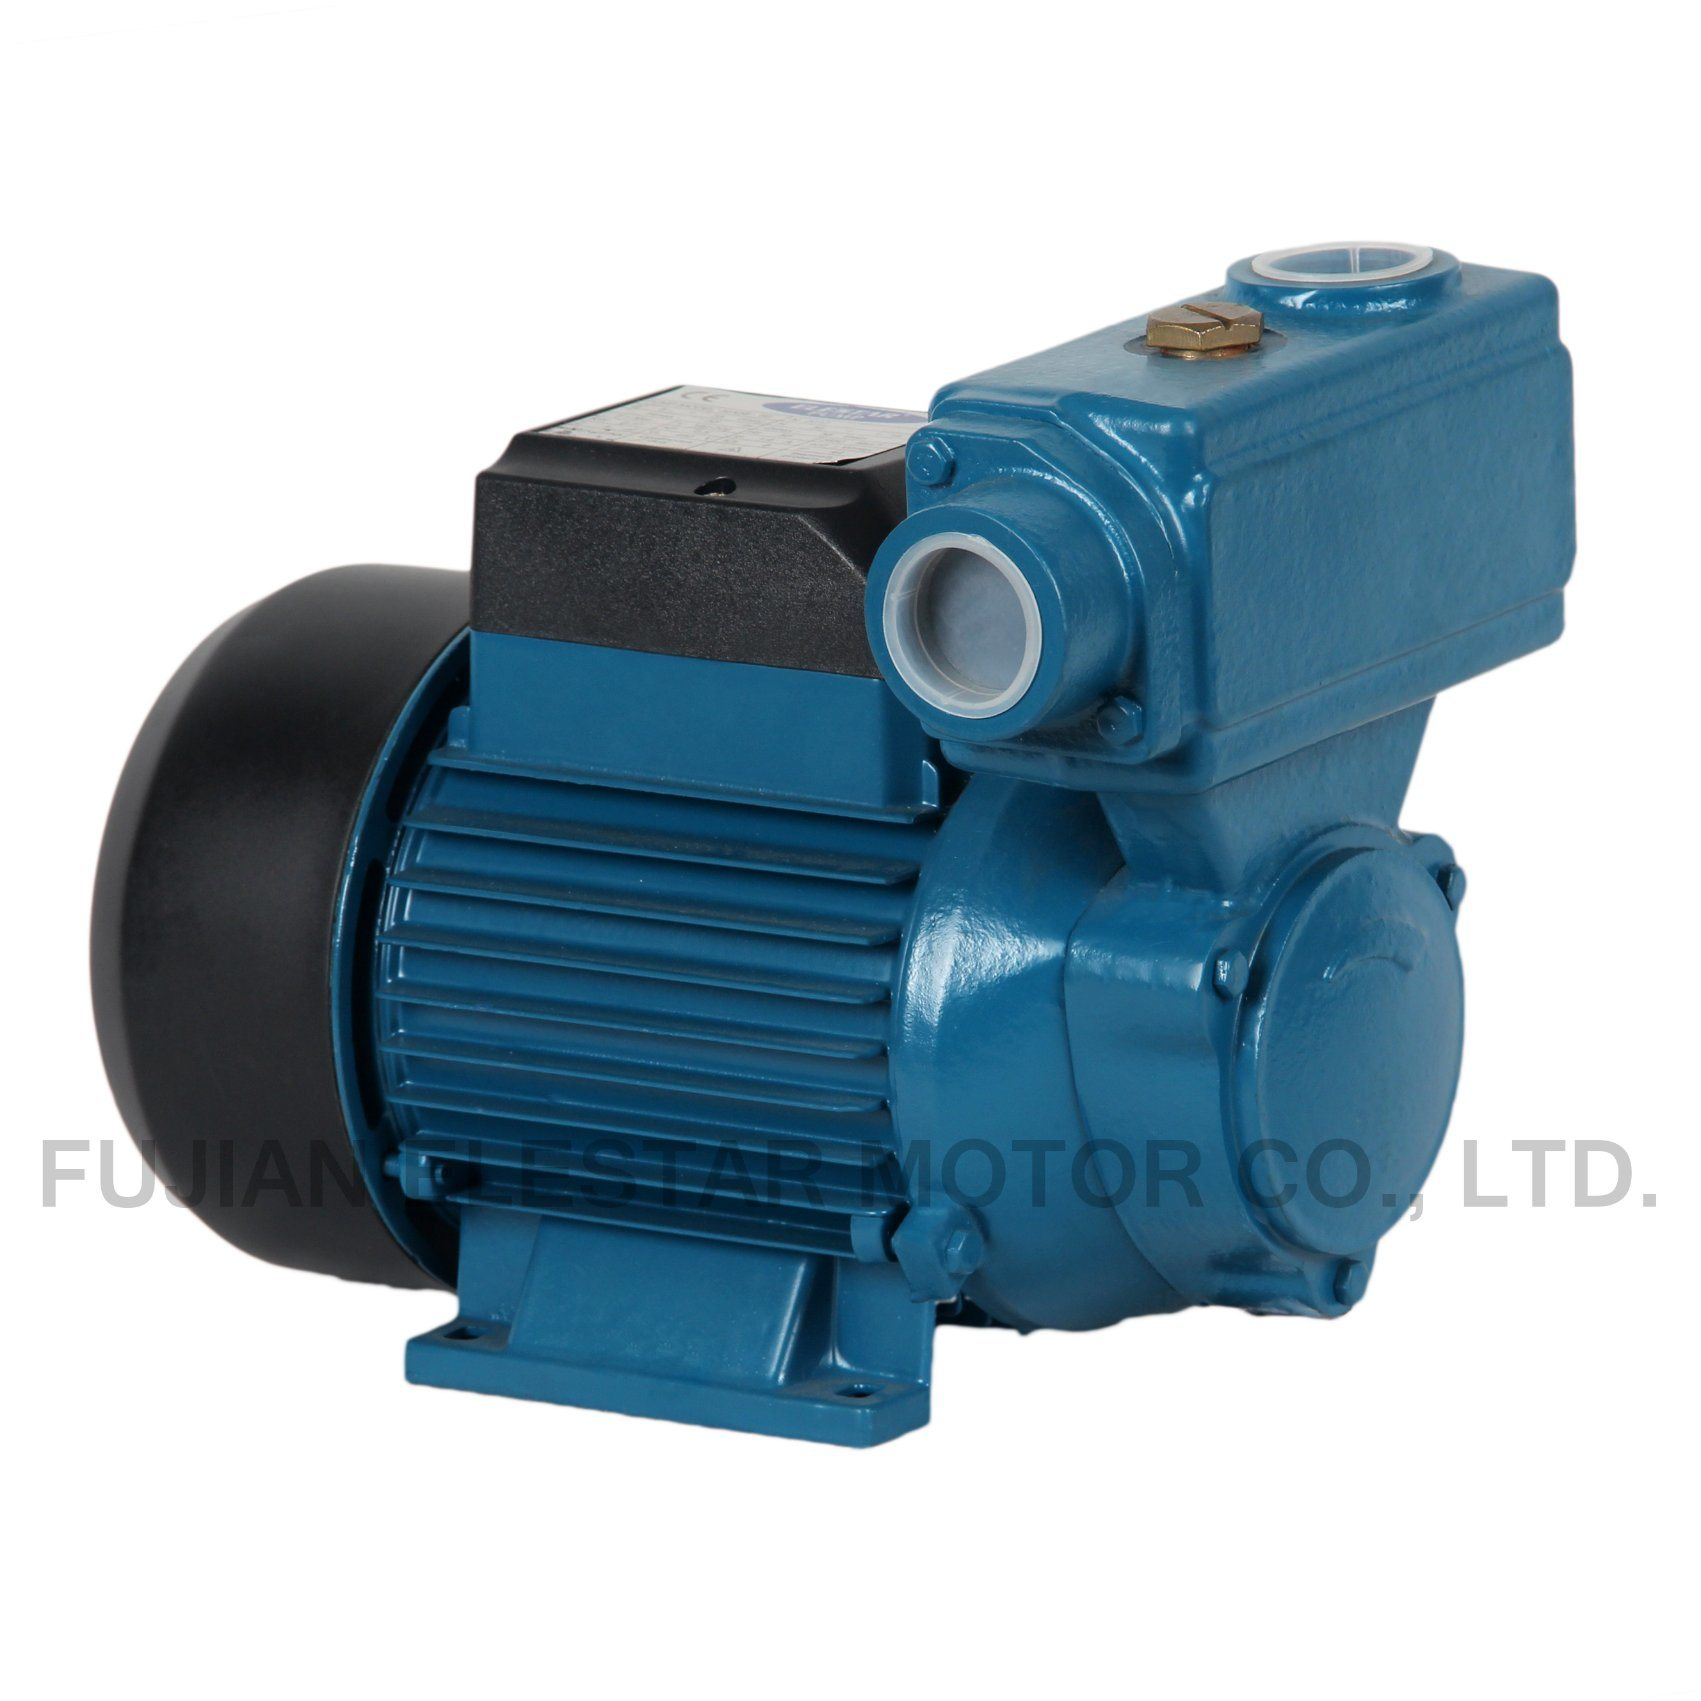 China TPS Series Copper Wire Brss Impeller Water Pump Motor Photos ...